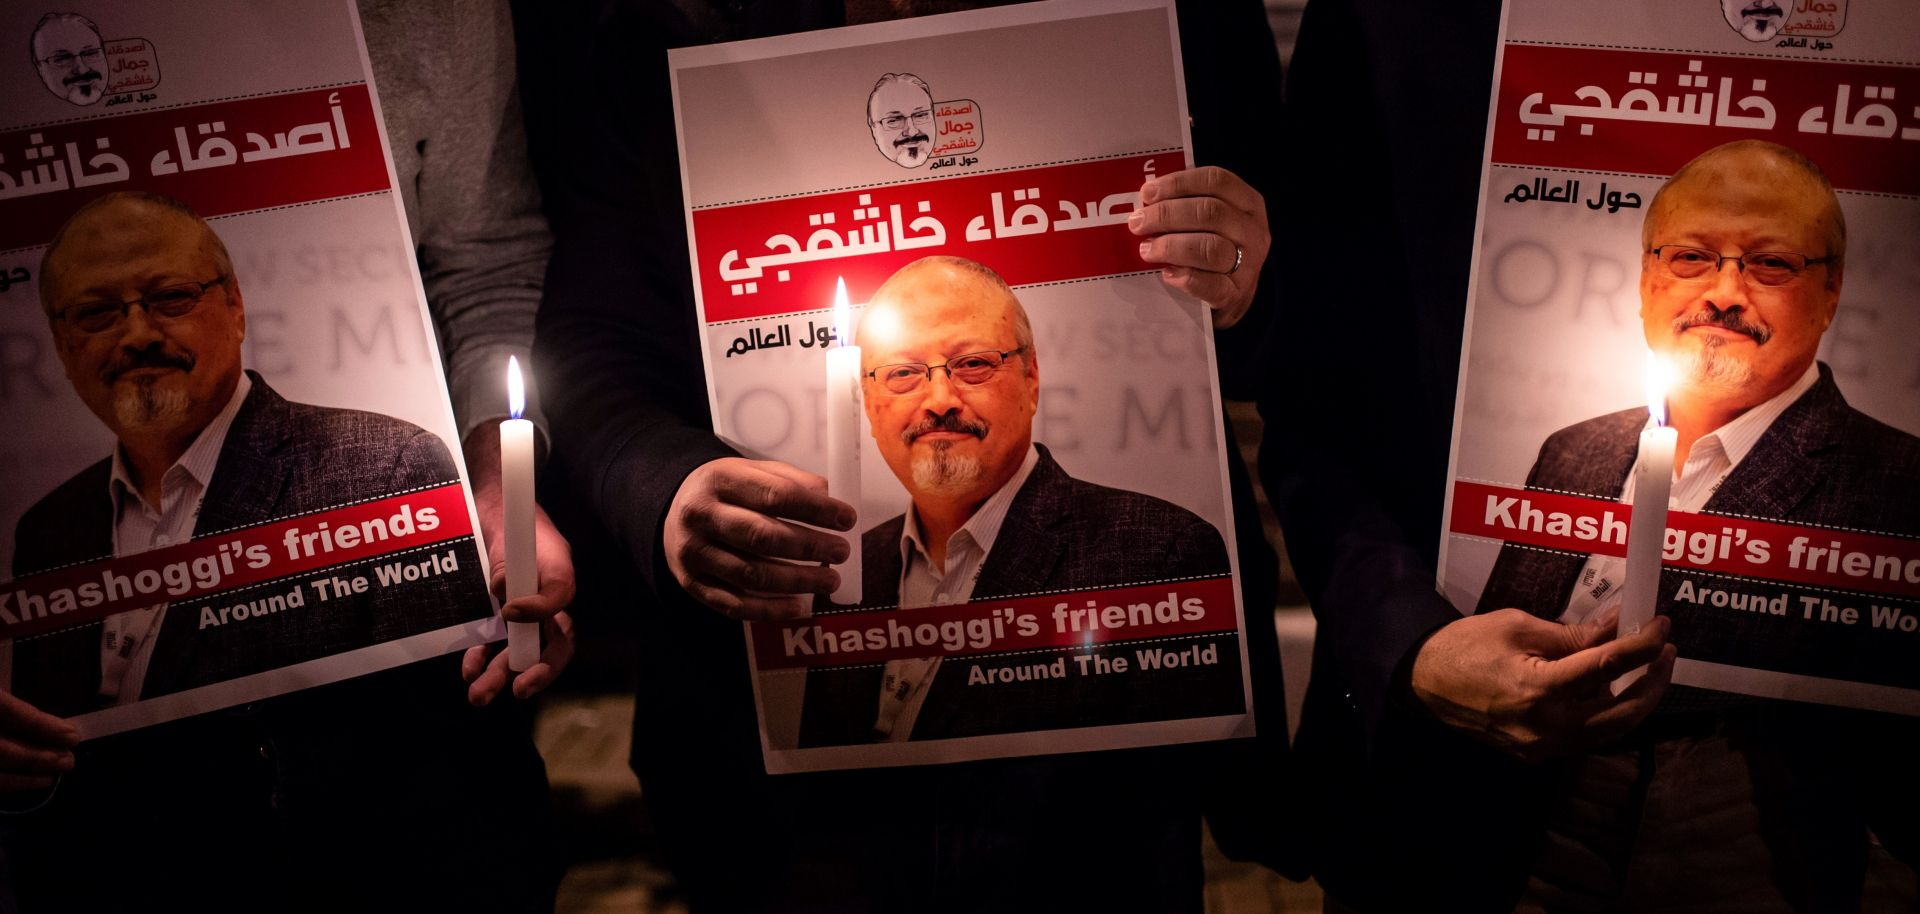 People hold posters depicting murdered Saudi journalist Jamal Khashoggi during a candlelit vigil outside the Saudi consulate in Istanbul on Oct. 25, 2018.